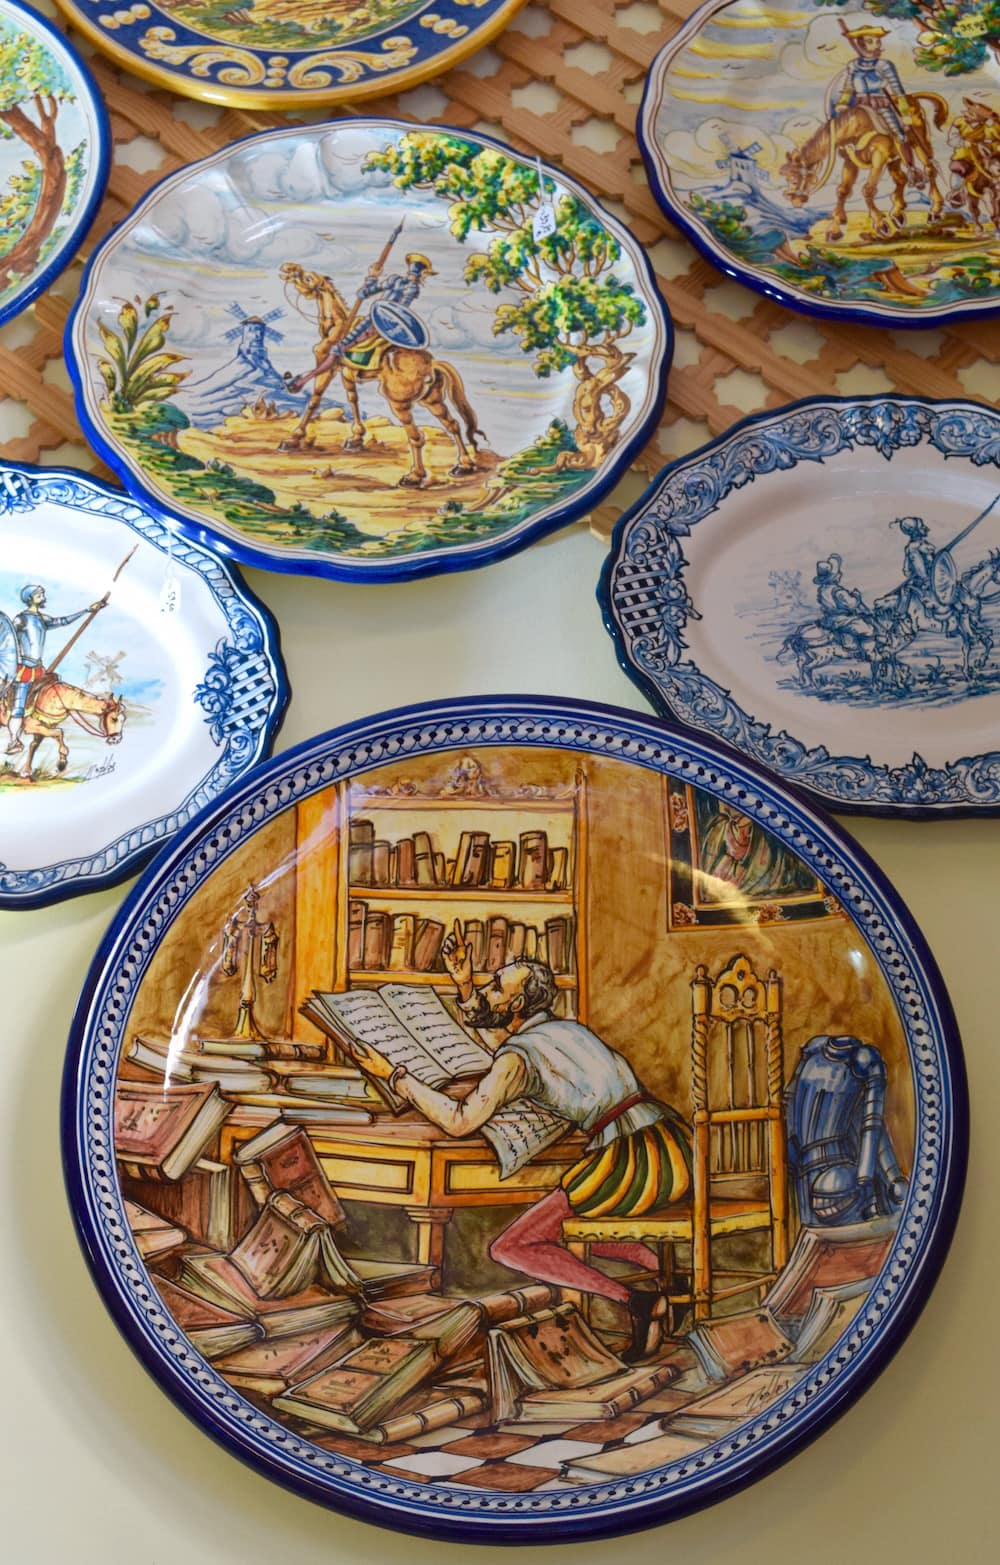 These beautiful ceramic plates are a Spanish form of art! Check out these Spanish ceramics that make eating even more fun.